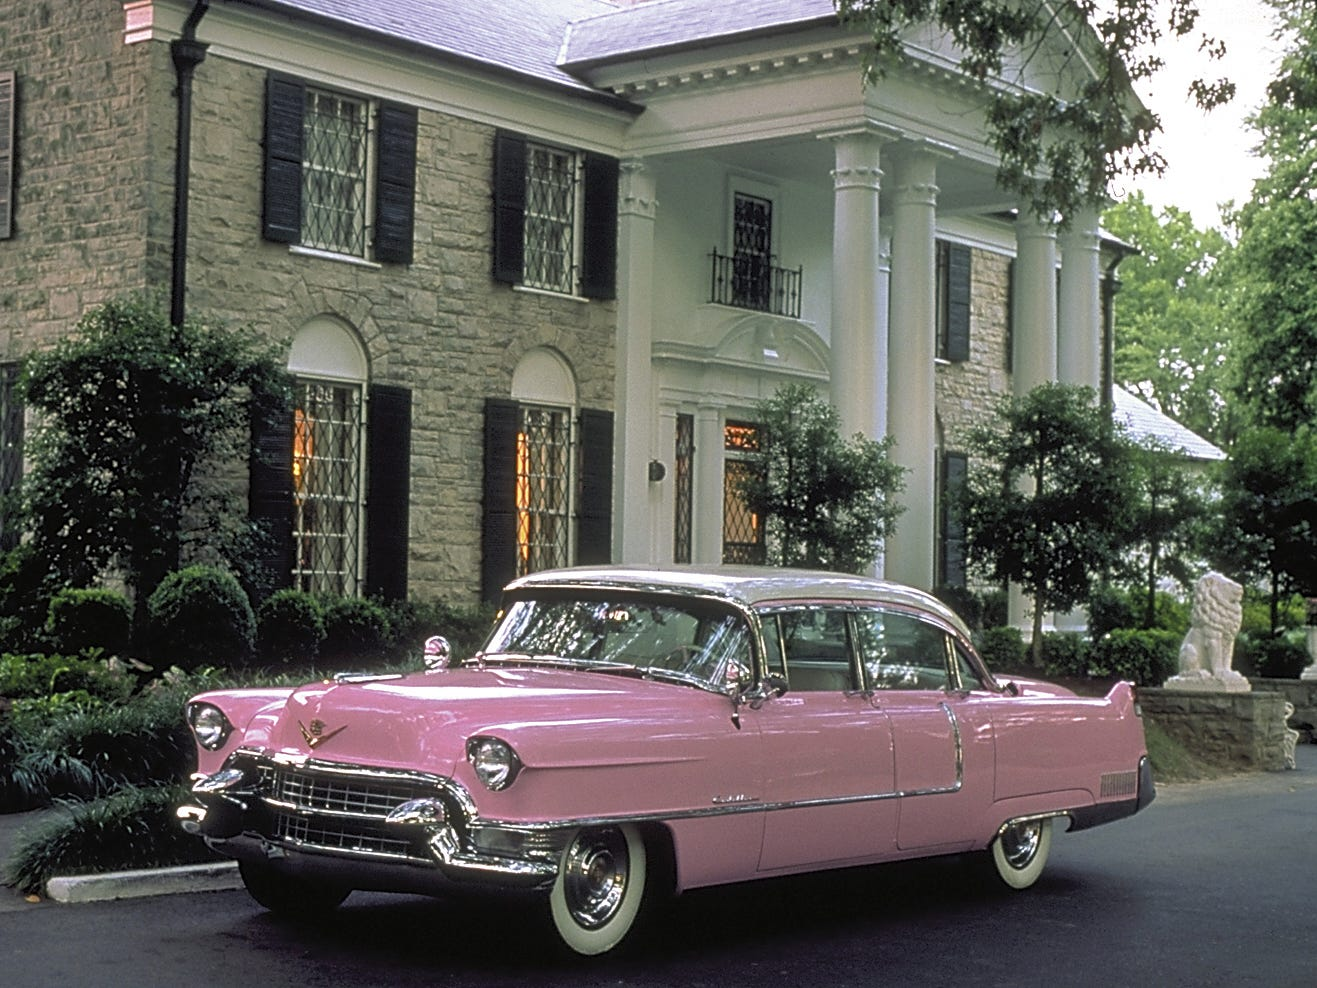 A vintage pink Cadillac parked in front of Graceland.